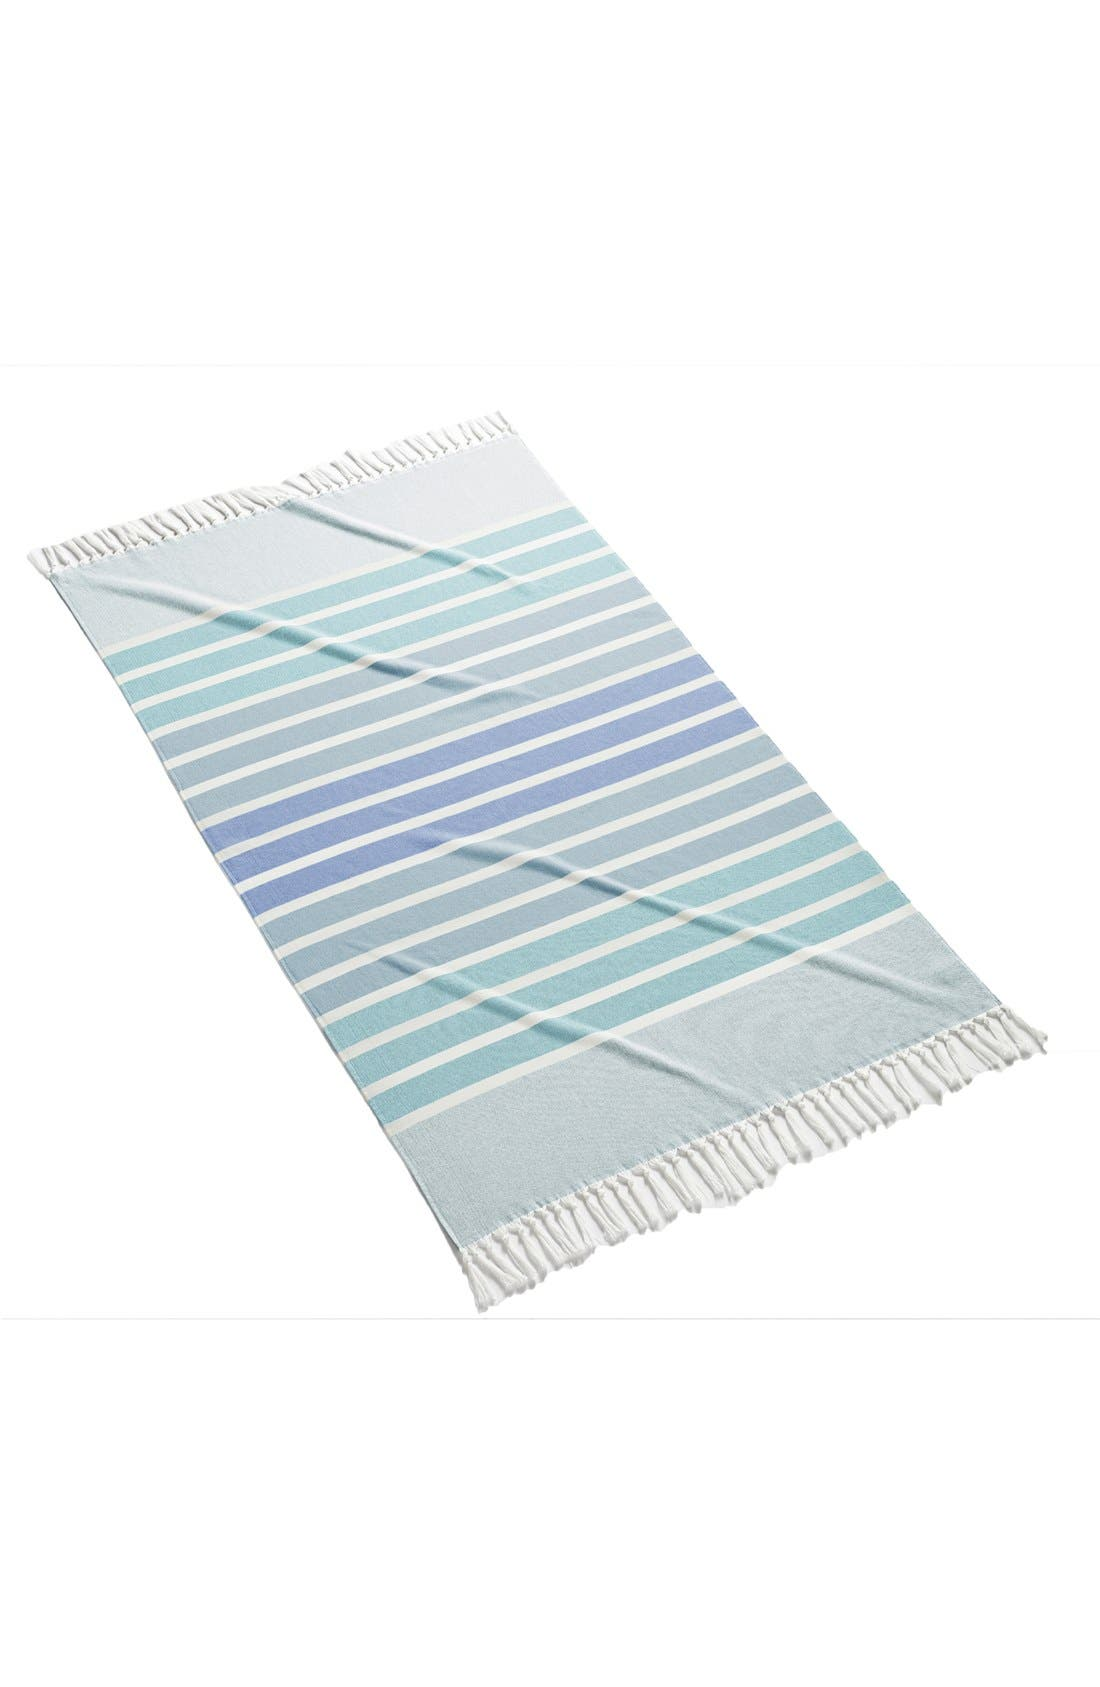 KASSATEX 'Bodrum' Cotton Beach Towel